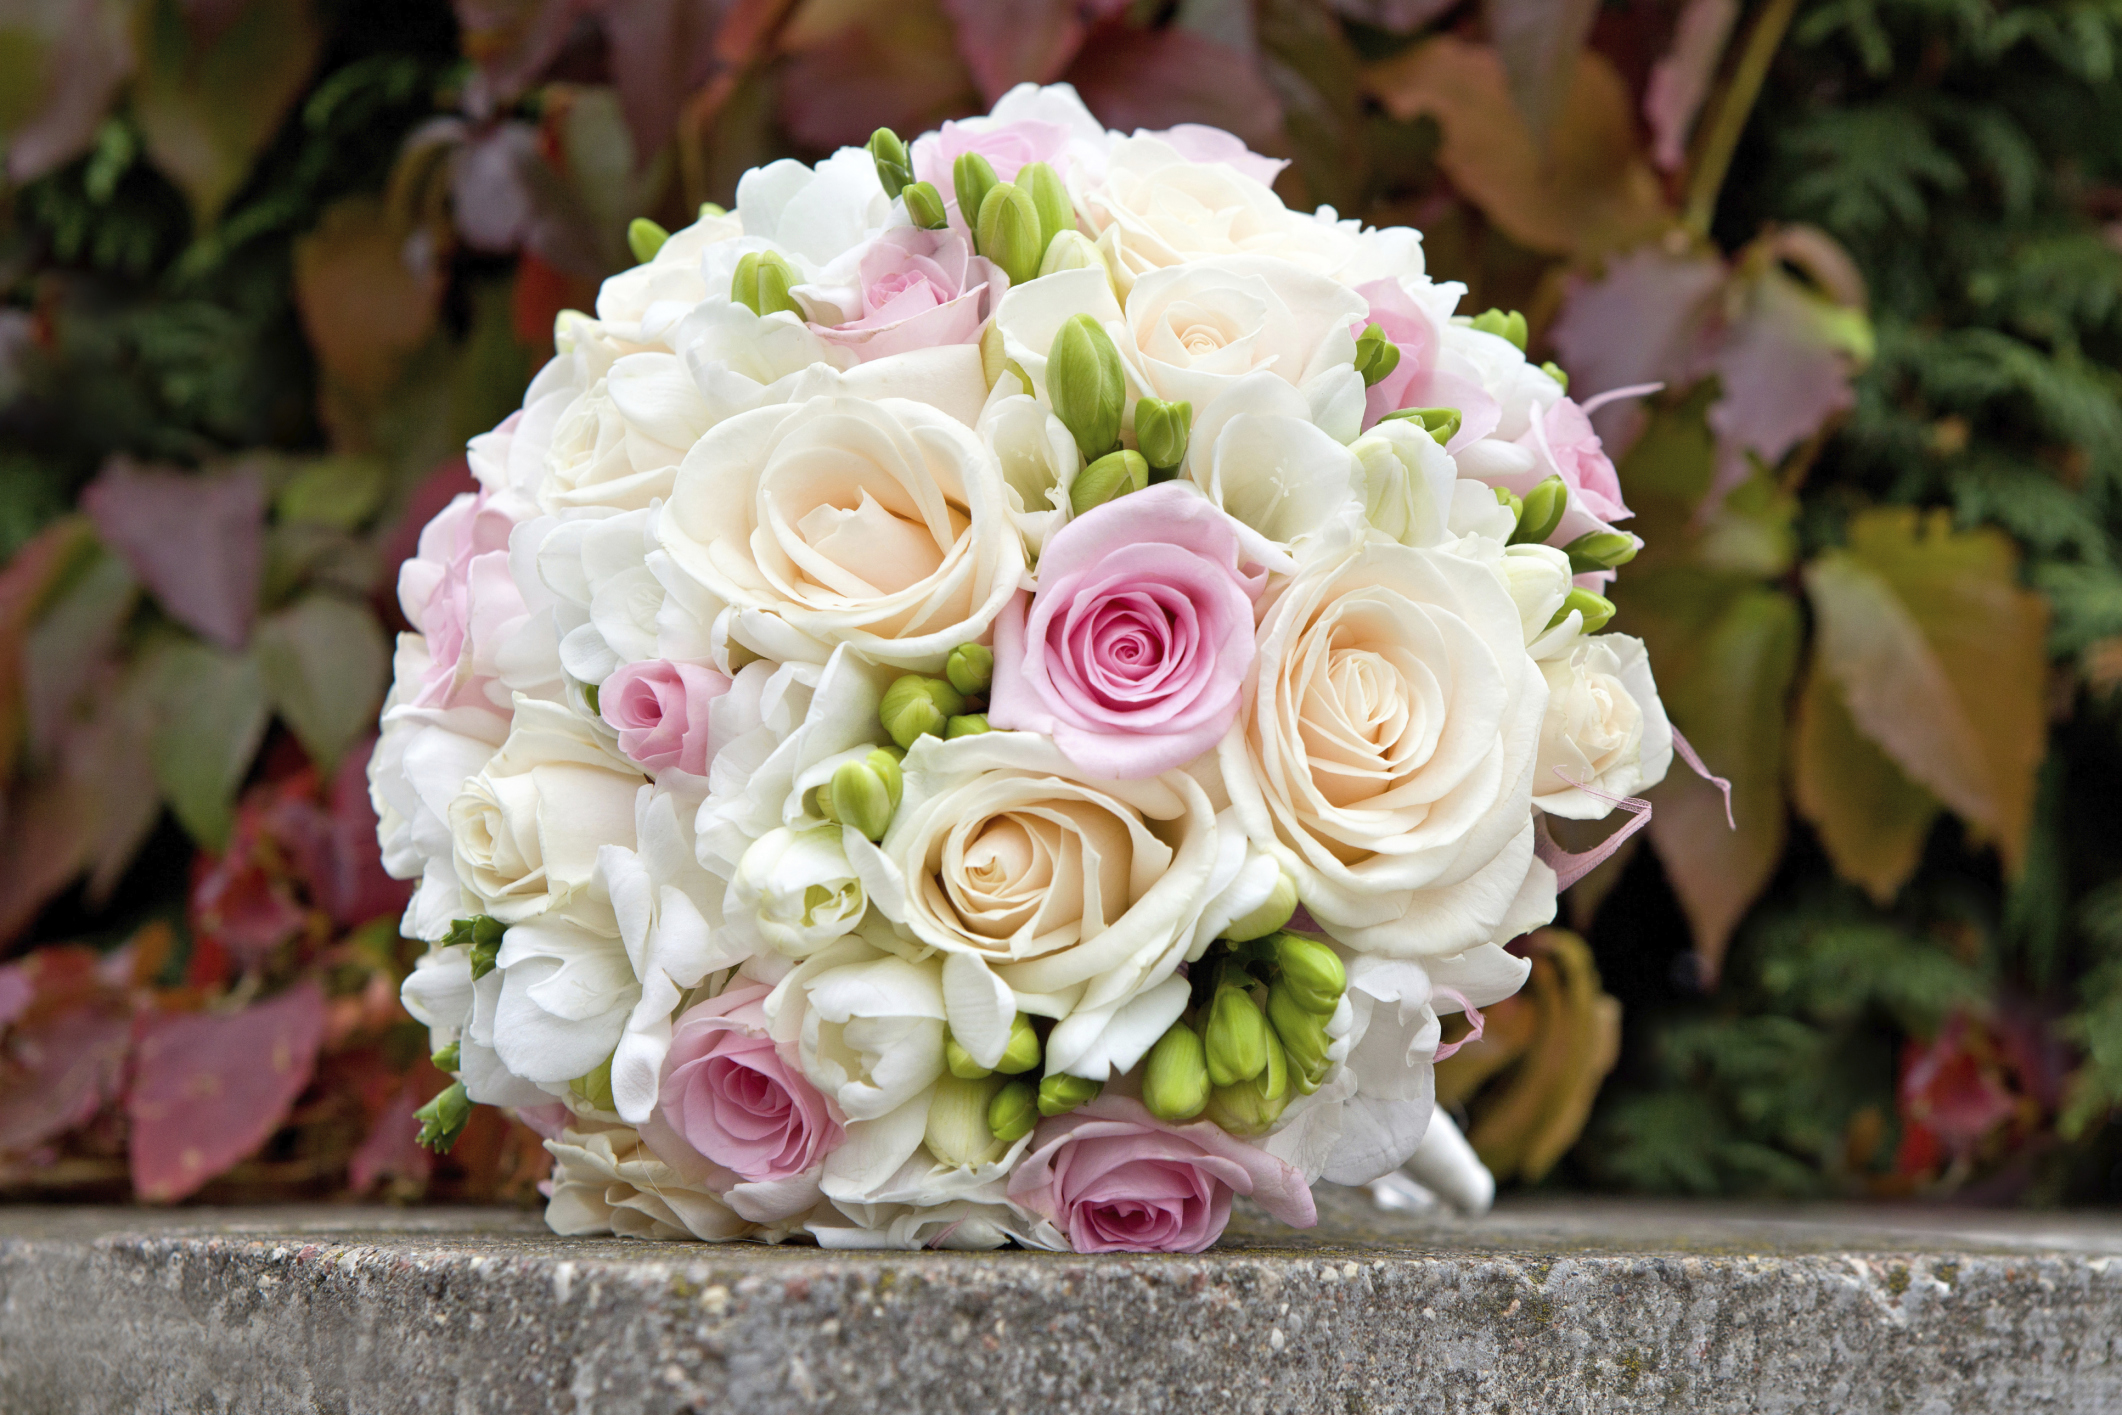 Matching Your Flowers To Your Wedding Theme Articles Easy Weddings